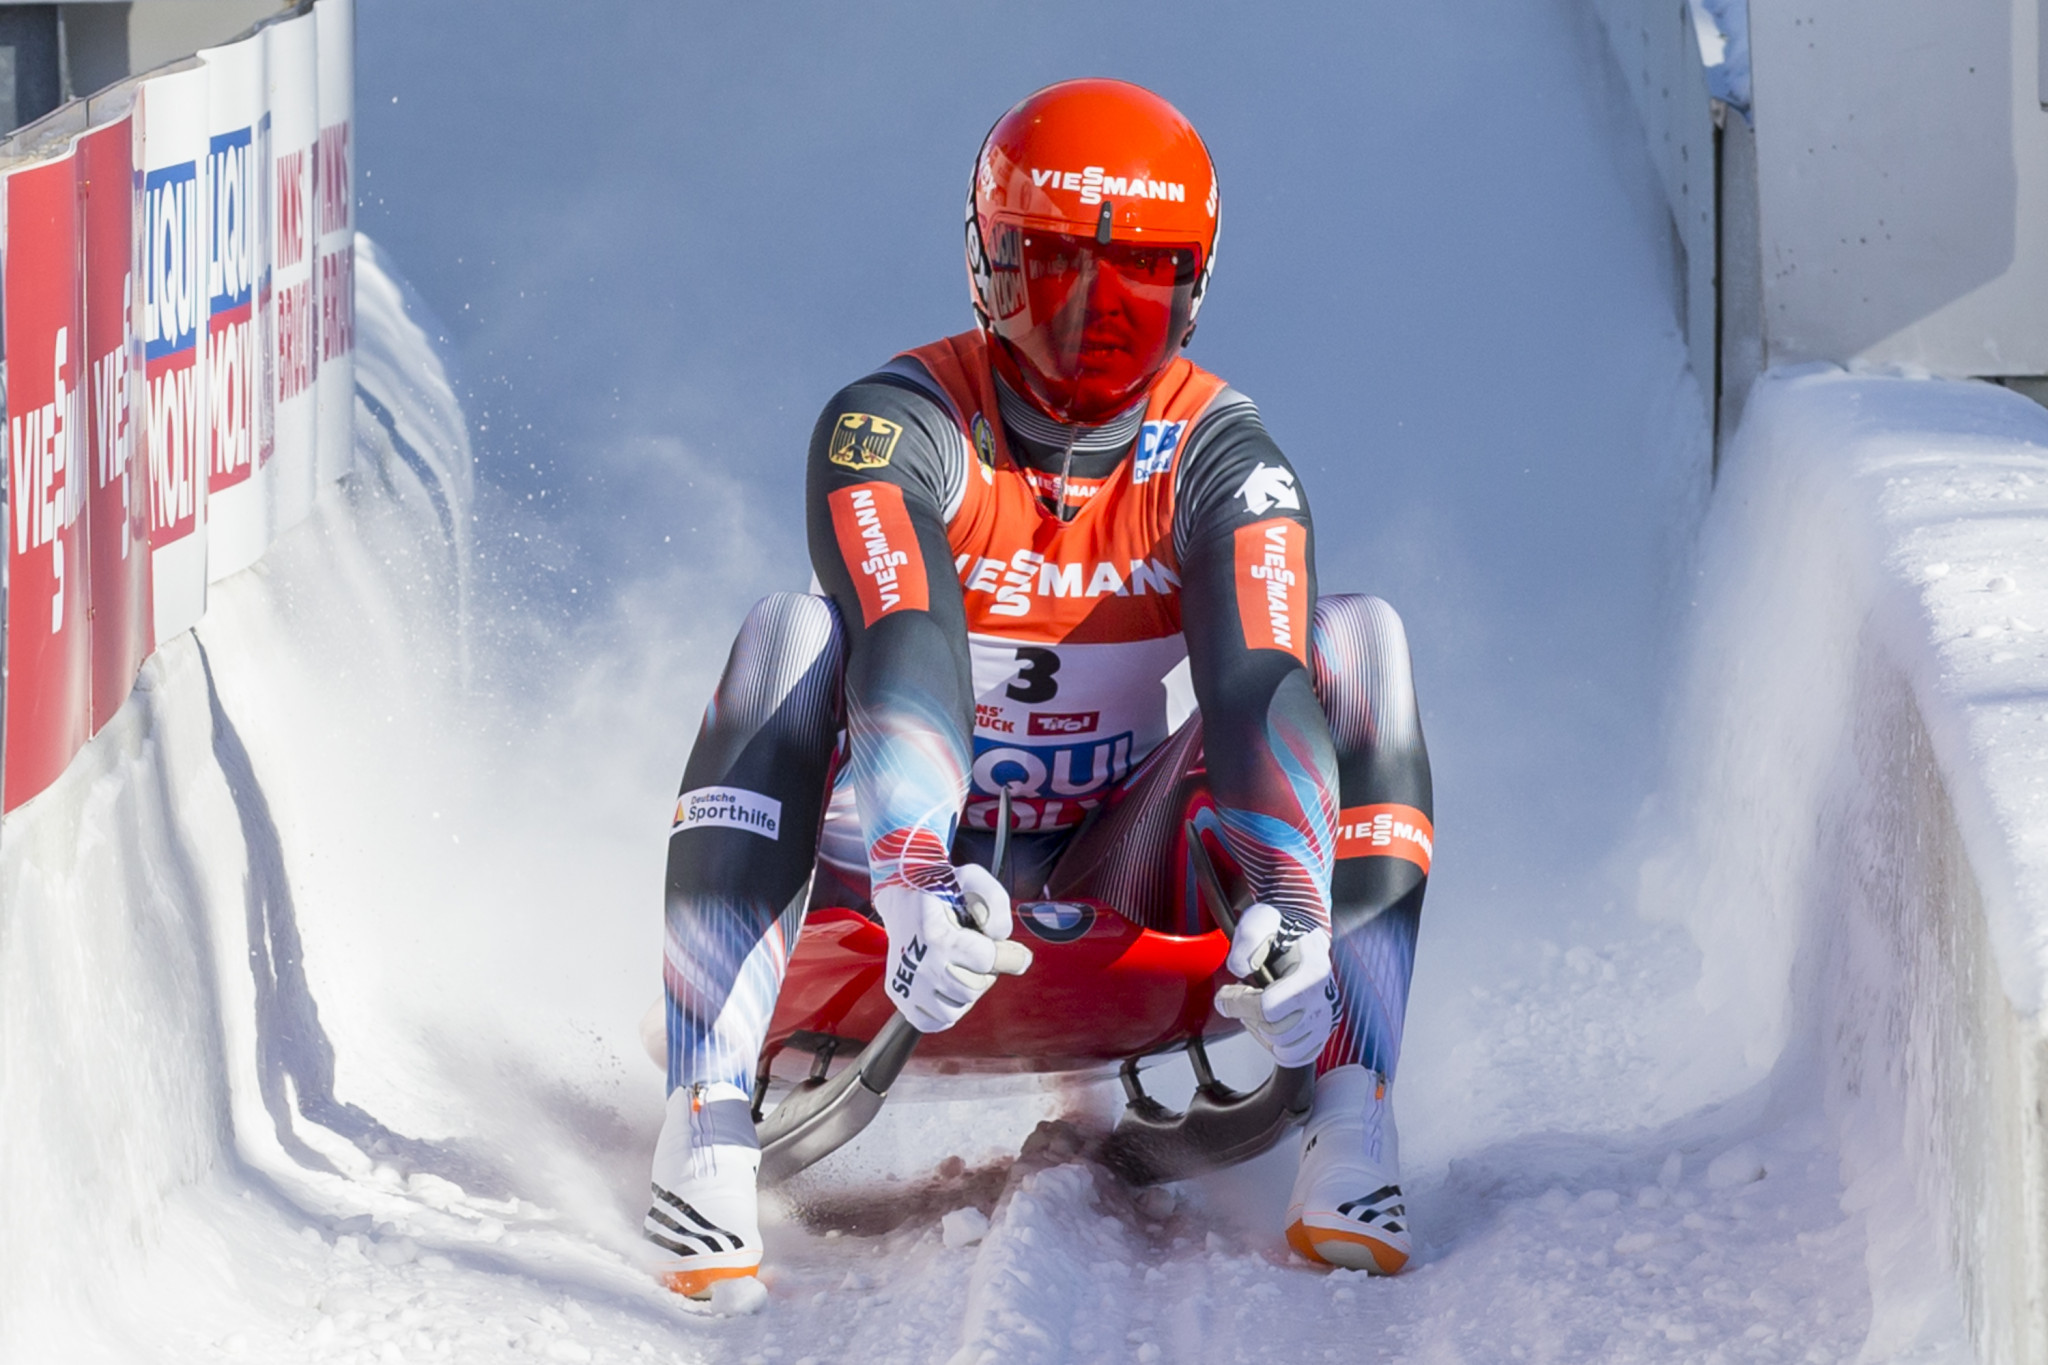 Geisenberger aiming for sixth win of FIL Luge World Cup season in Oberhof